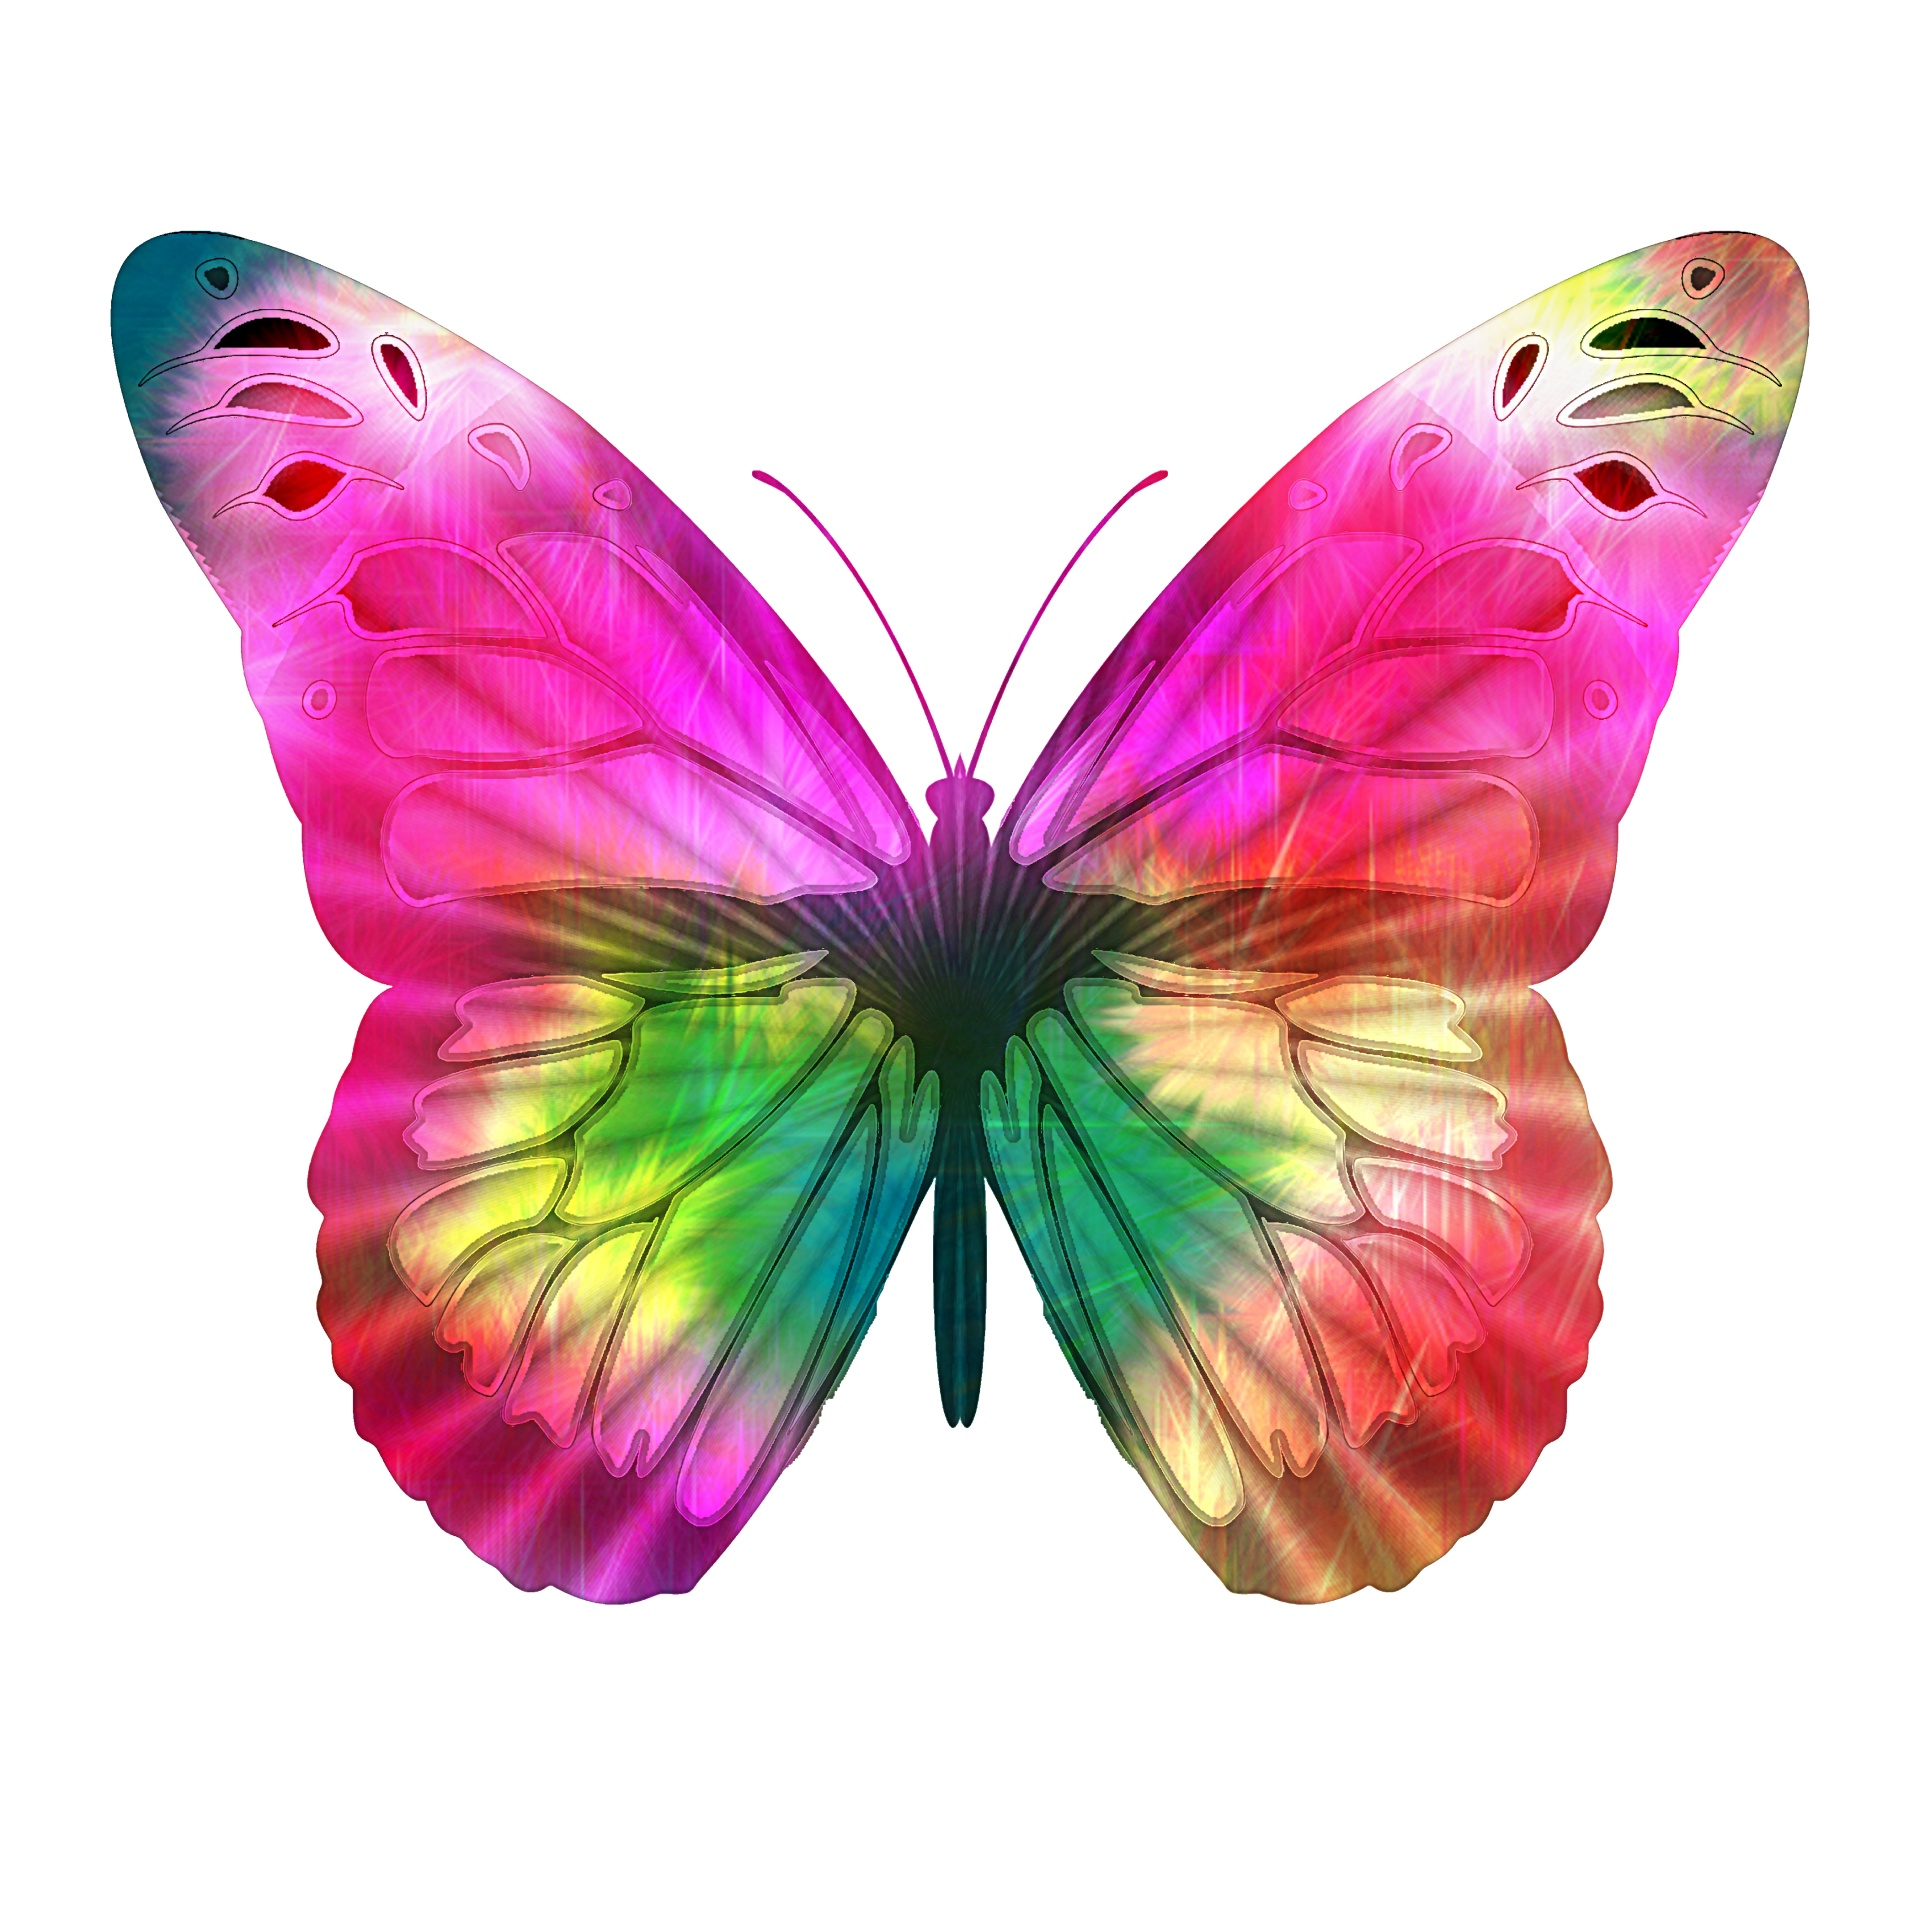 Bright Pink Butterfly Free Stock Photo - Public Domain Pictures